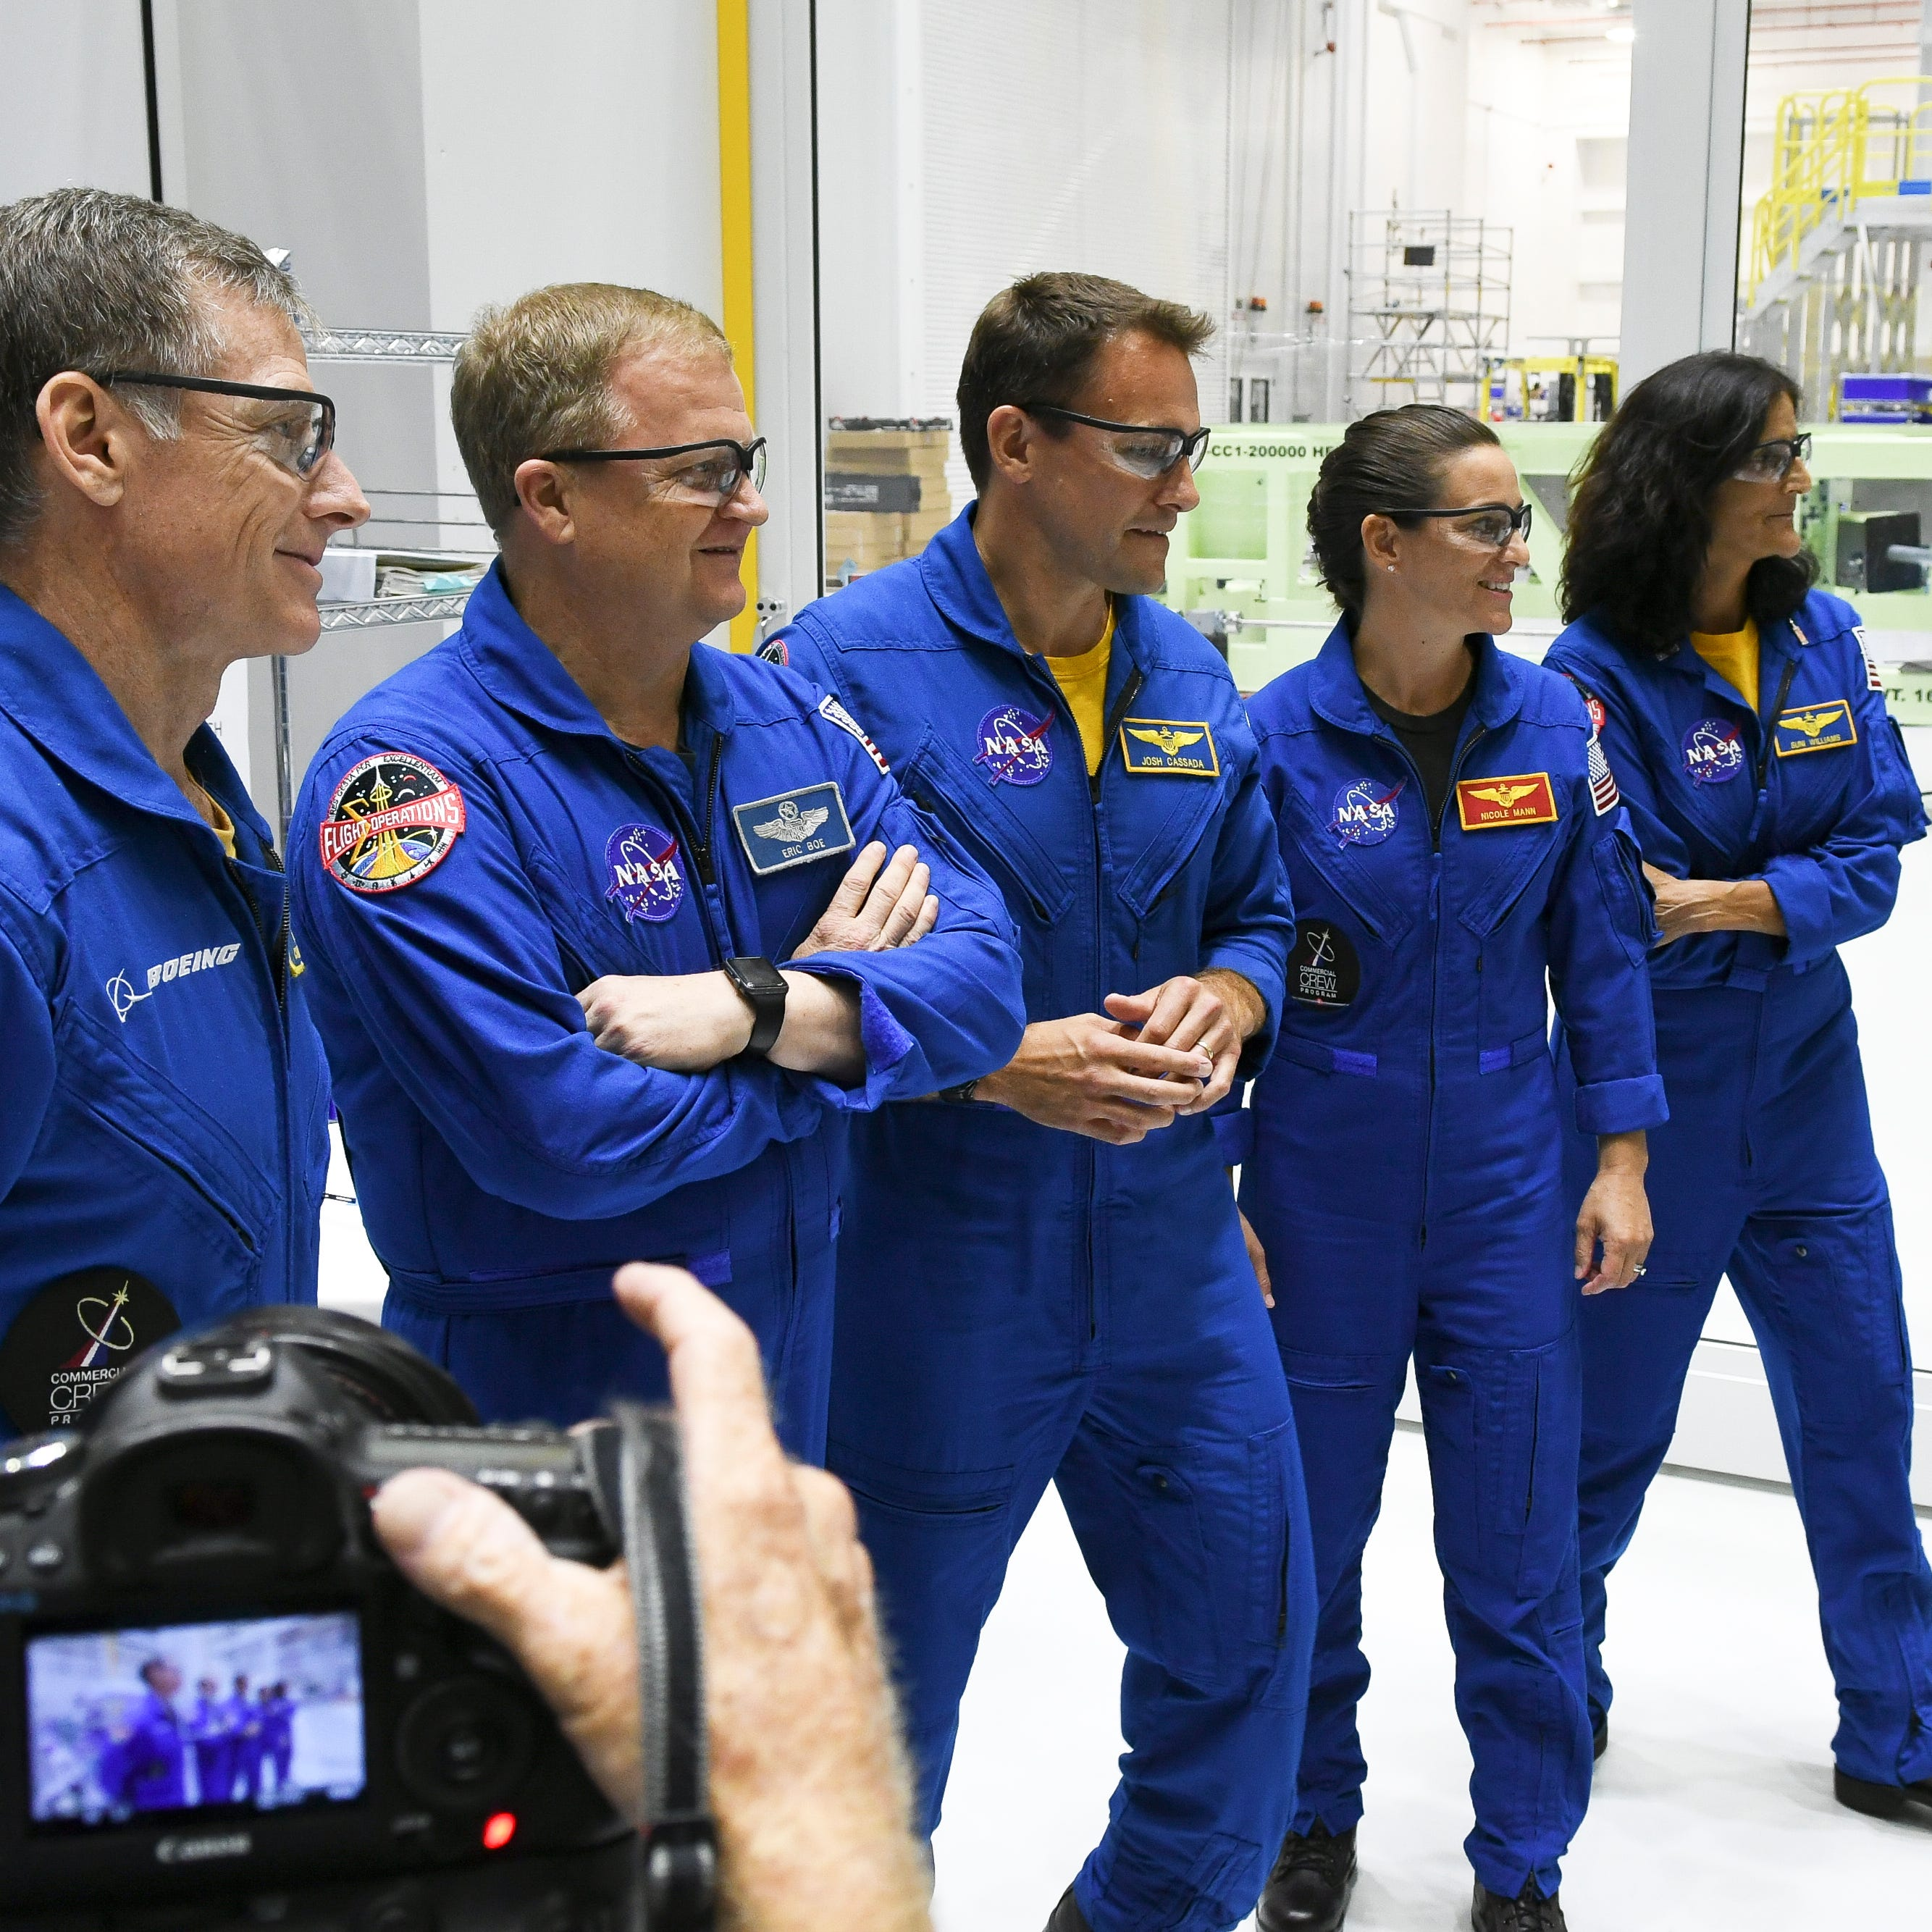 Boeing Starliner astronauts make first official visit to Kennedy Space Center